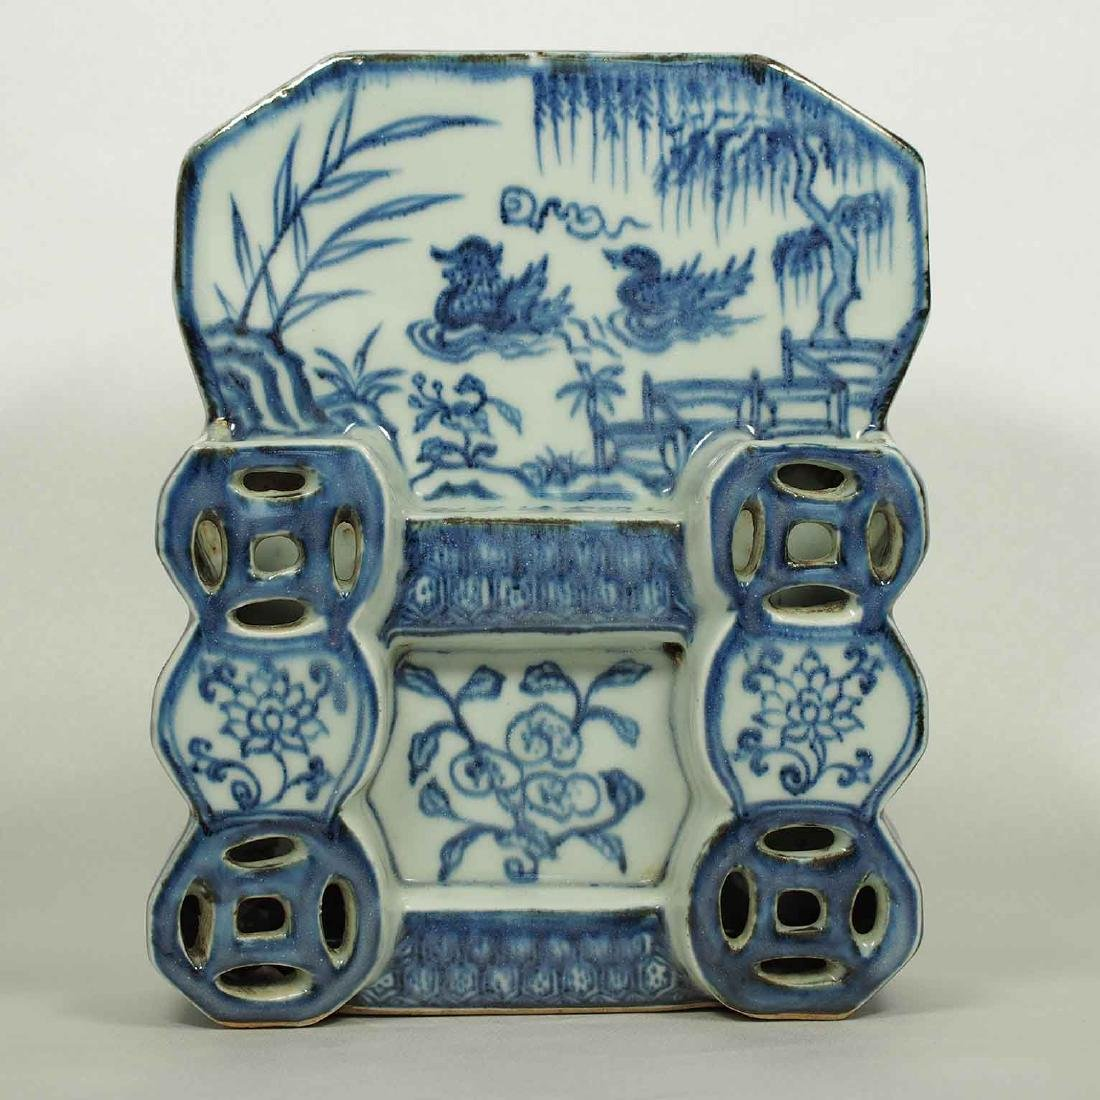 Pen Stand with Mandarin Ducks Design, Xuande Mark, Ming